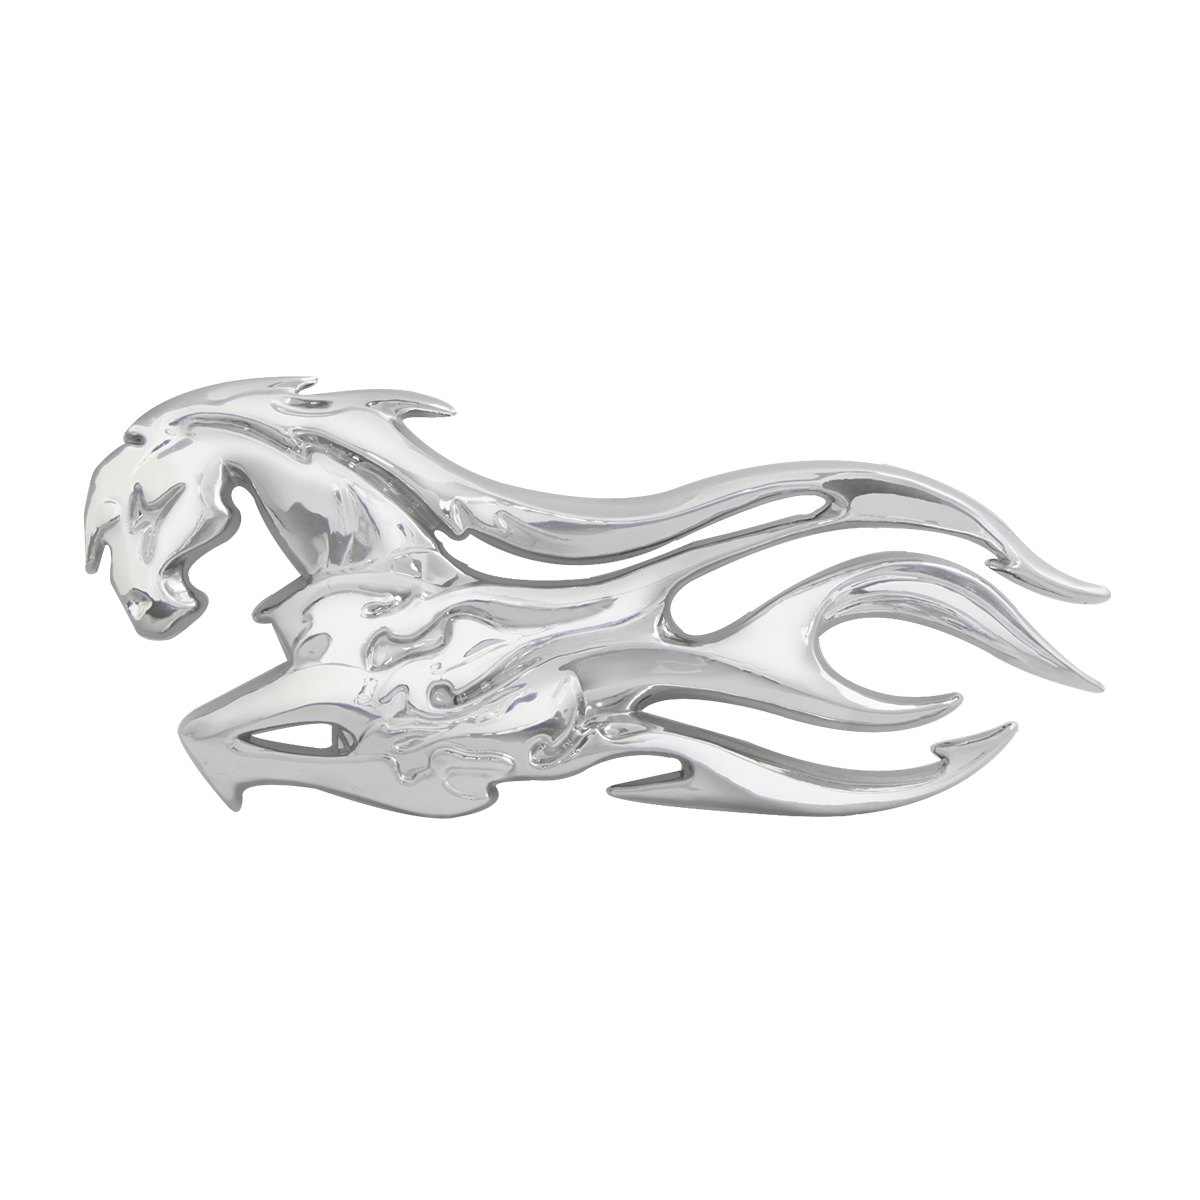 #90191 Chrome Plastic Flamed Mustang Accent - Facing Left